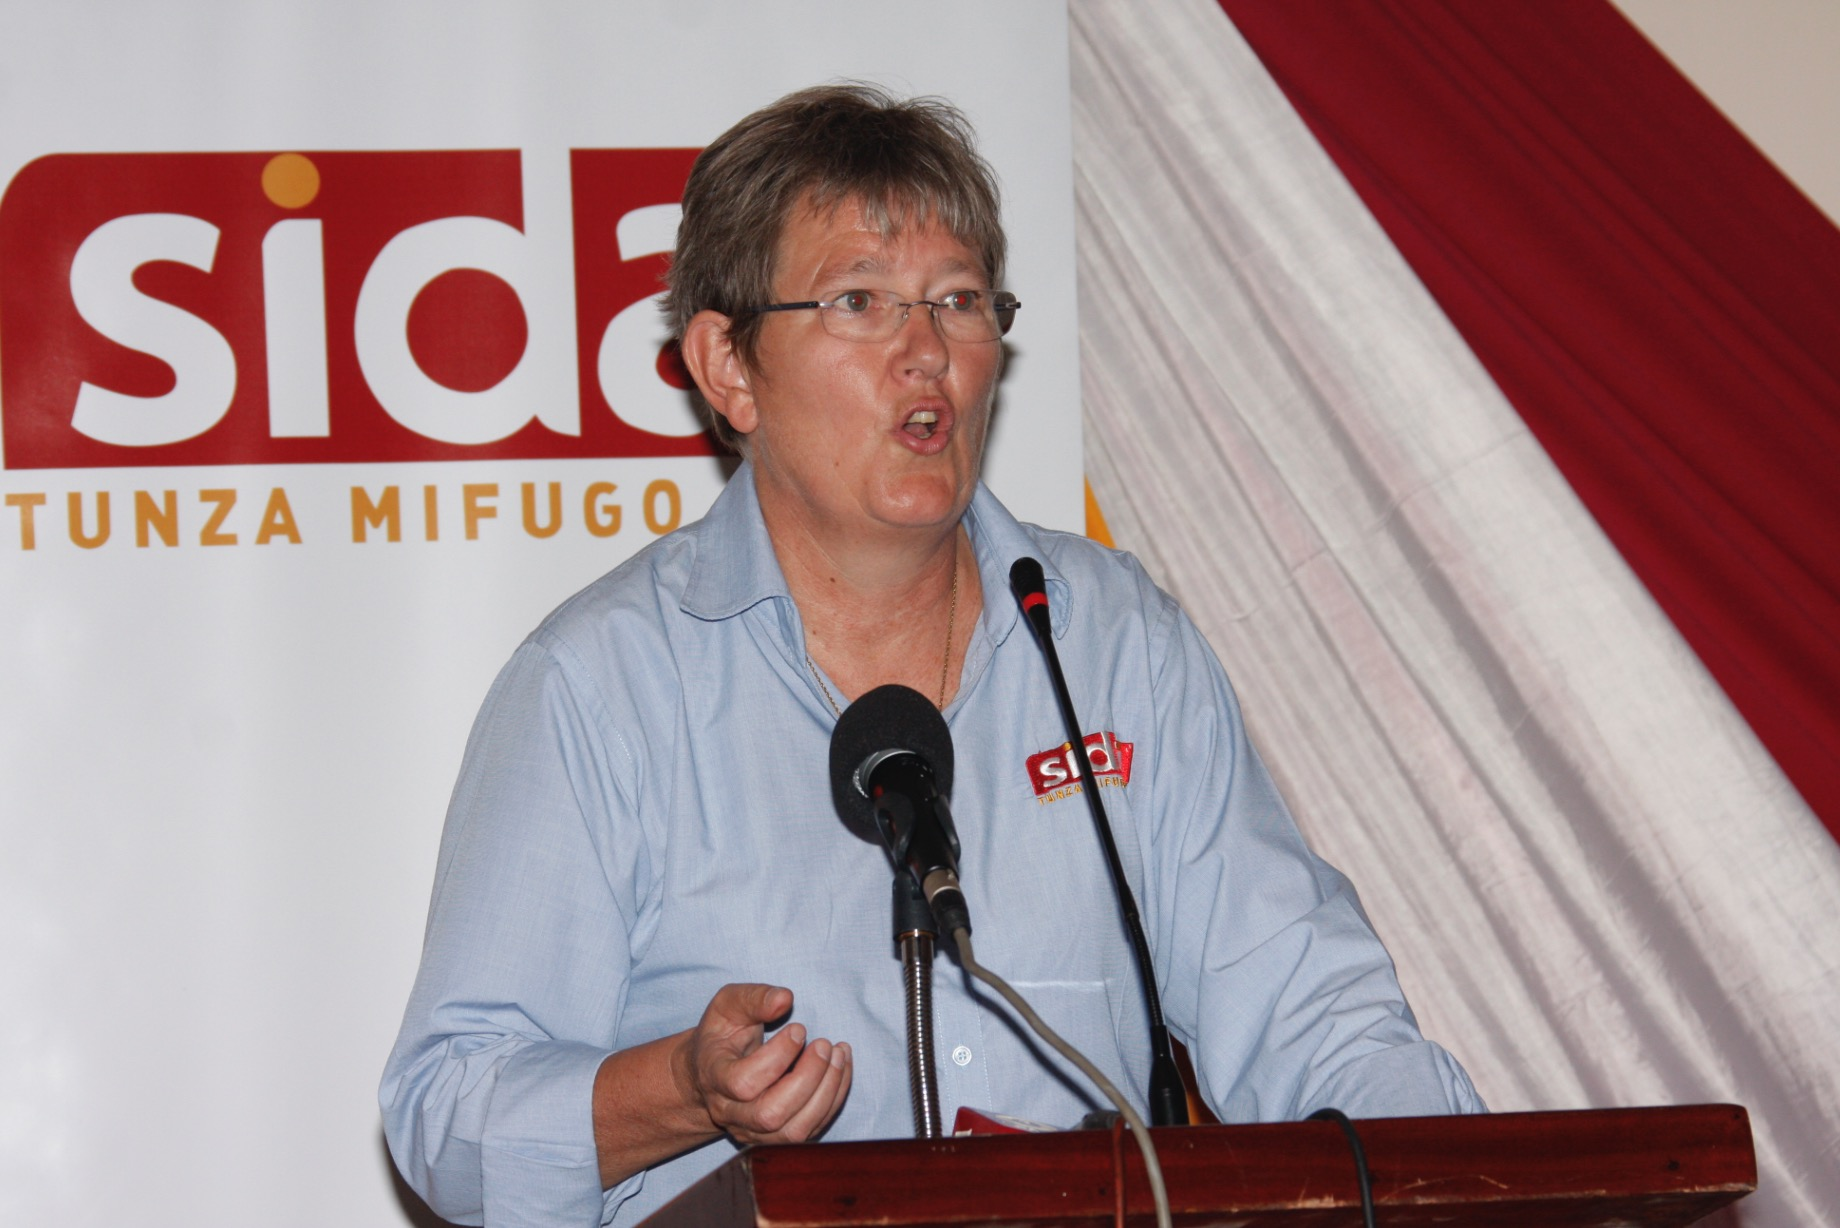 Dr Christie Peacock , Founder and Executive Chairman of  Sidai Africa Ltd